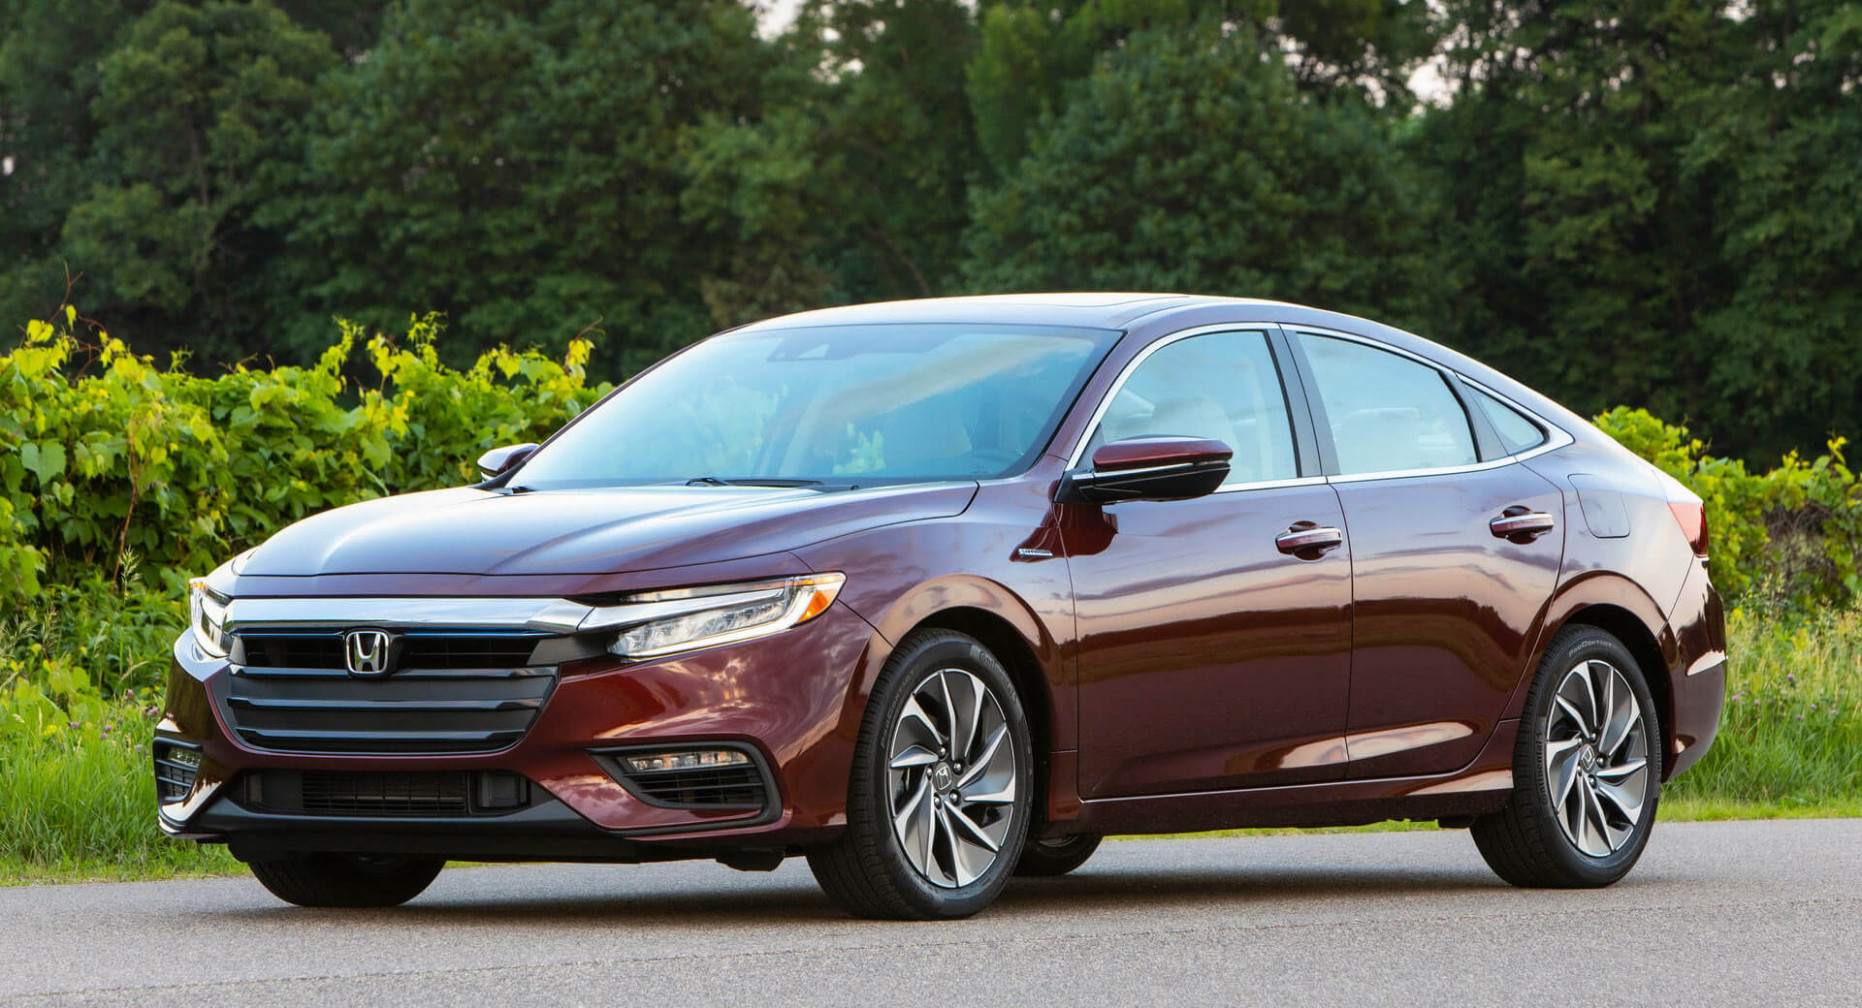 7 Honda Insight Priced From $7,7, Gets More Standard Safety ..